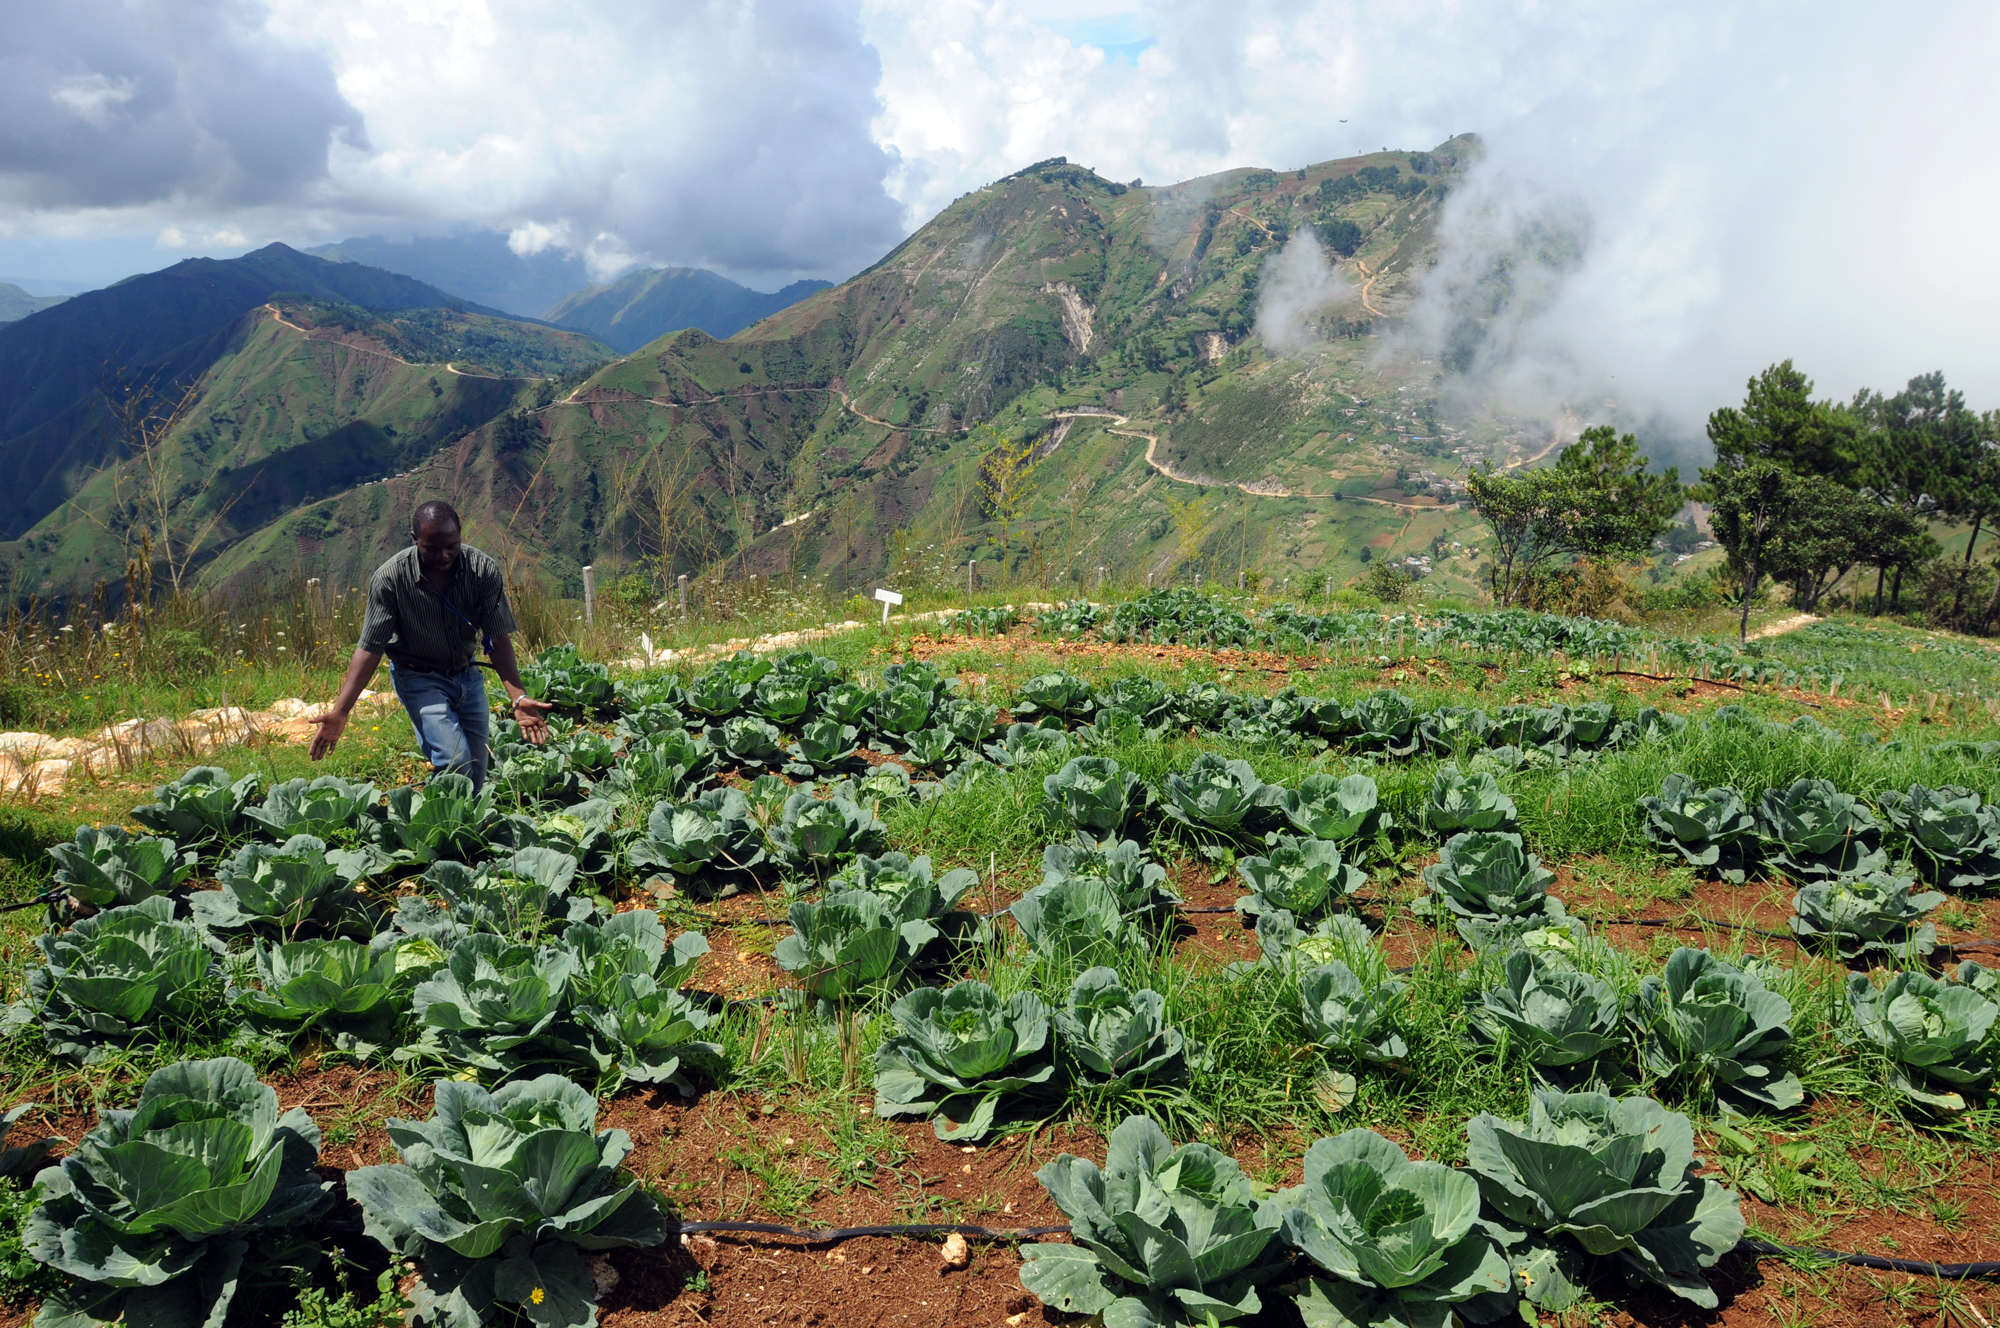 http://upload.wikimedia.org/wikipedia/commons/b/bb/Amid_rows_of_cabbage,_Haiti.jpg